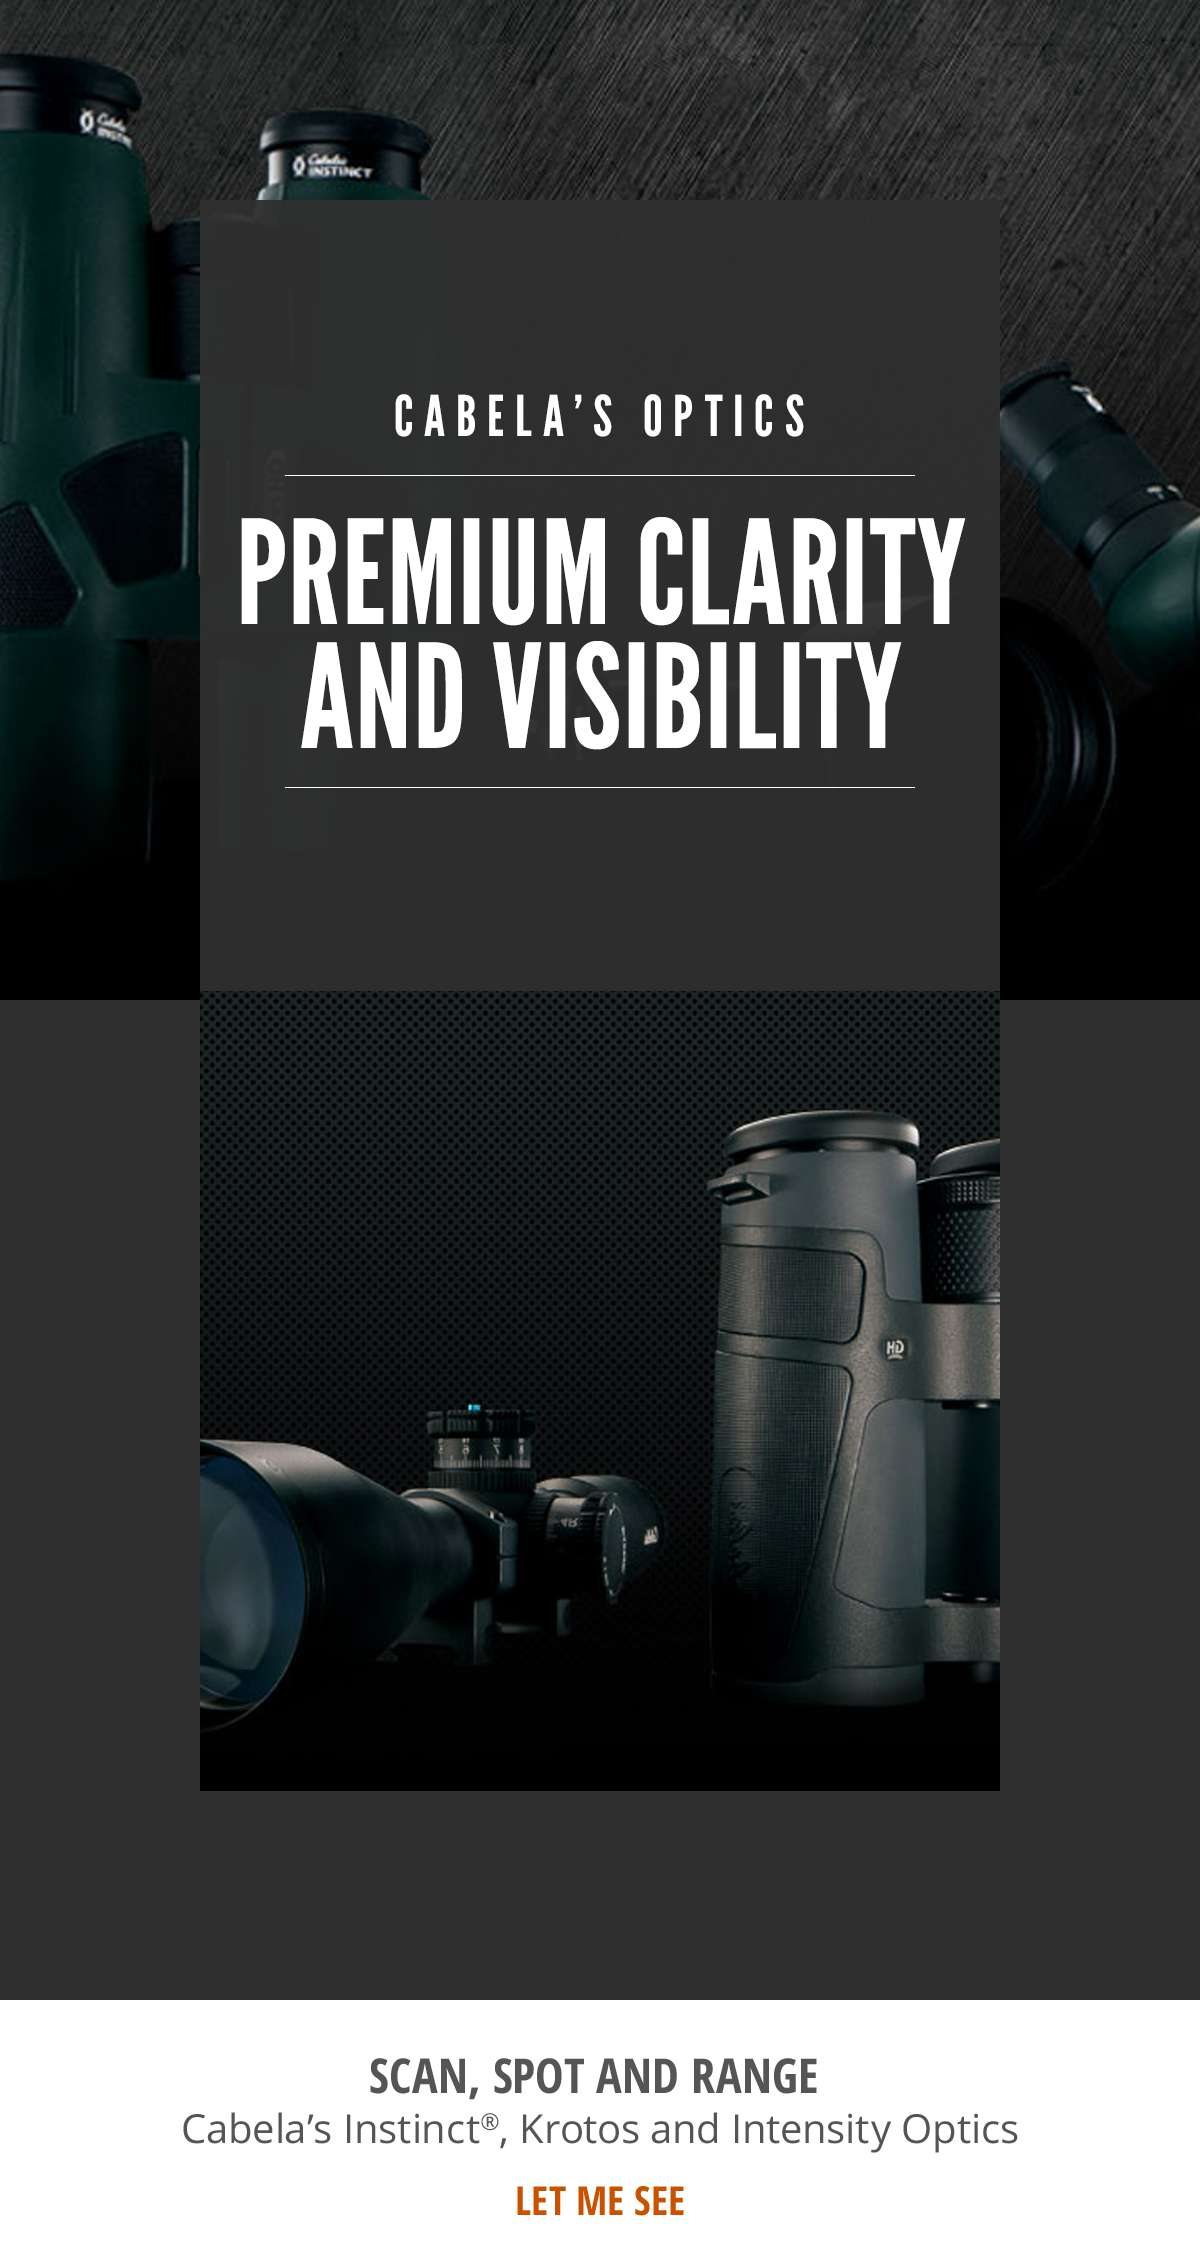 Cabela's Optics - Premium Clarity and Visibility - Shop Now